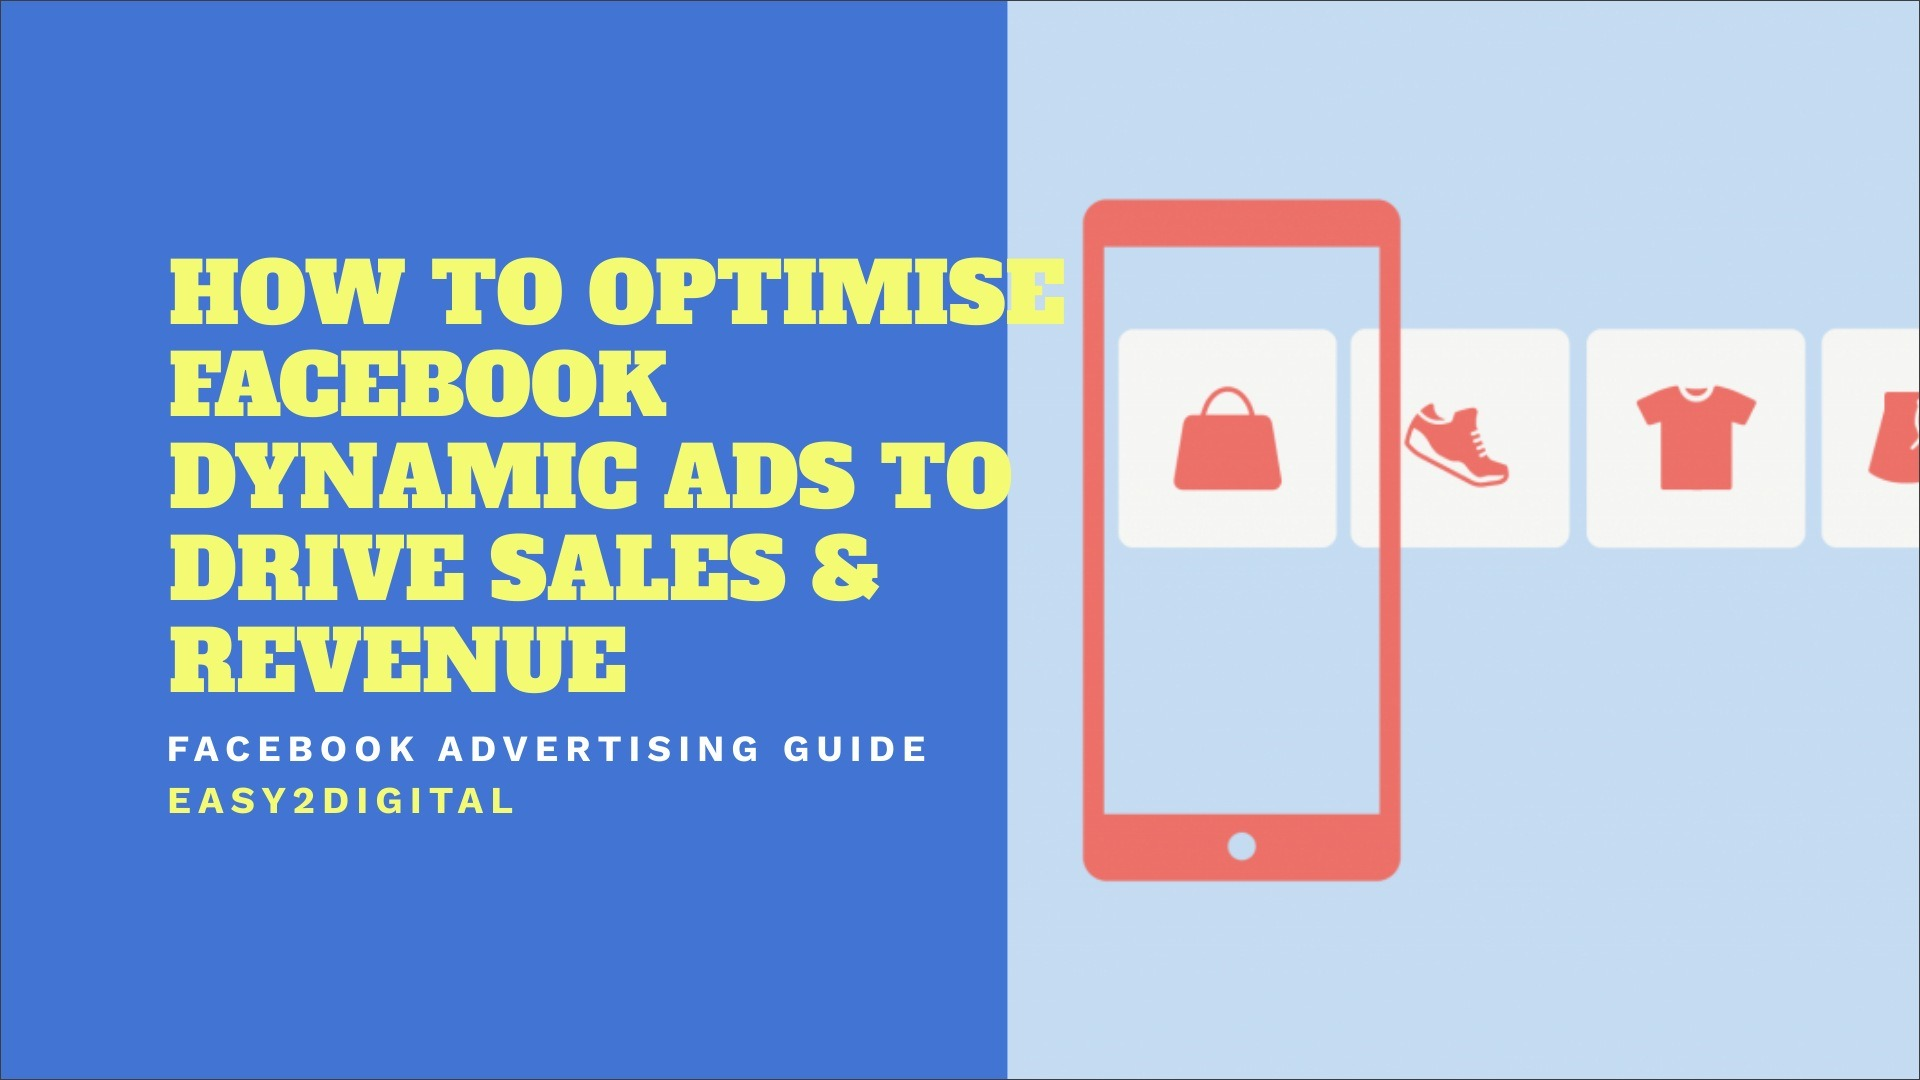 Facebook Ads: How to Optimise Dynamic Product Ads for Sales & Revenue